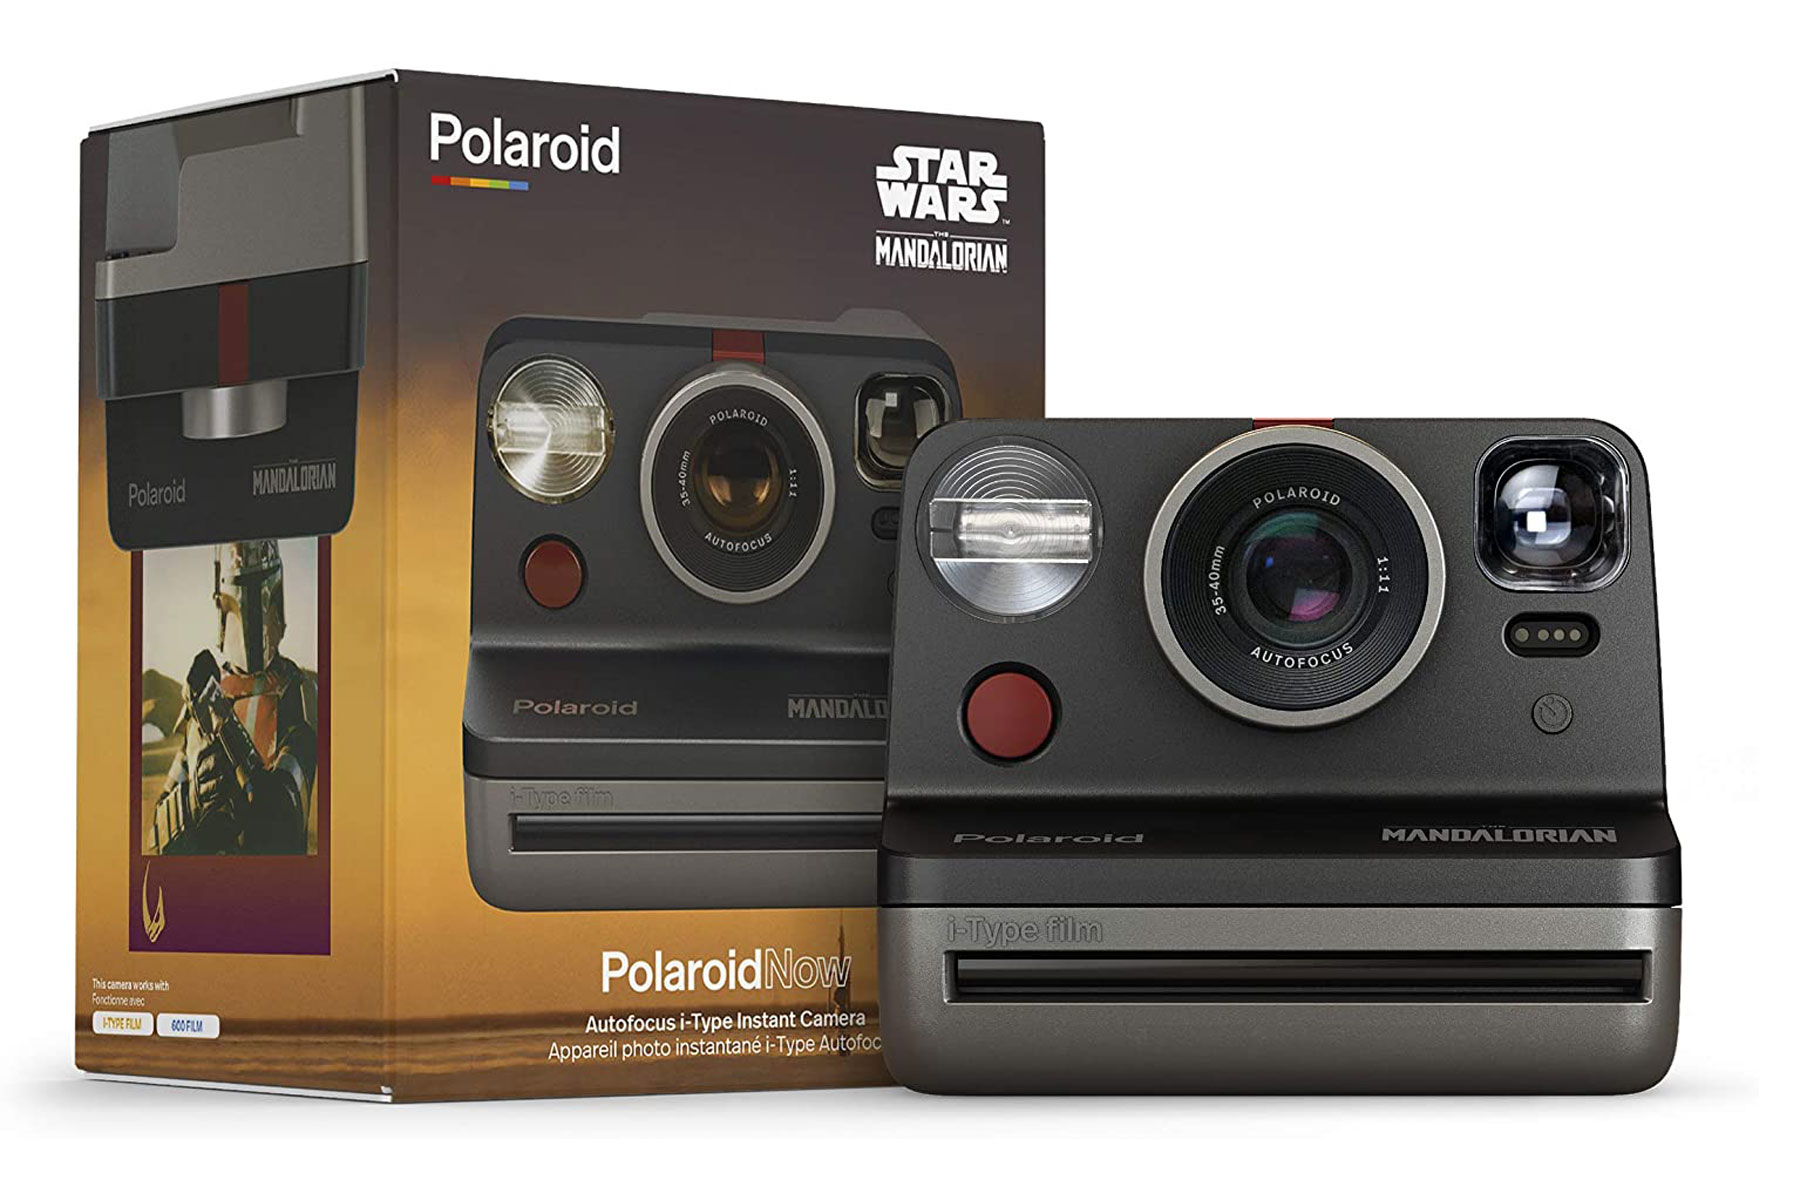 Star Wars-themed Polaroid camera